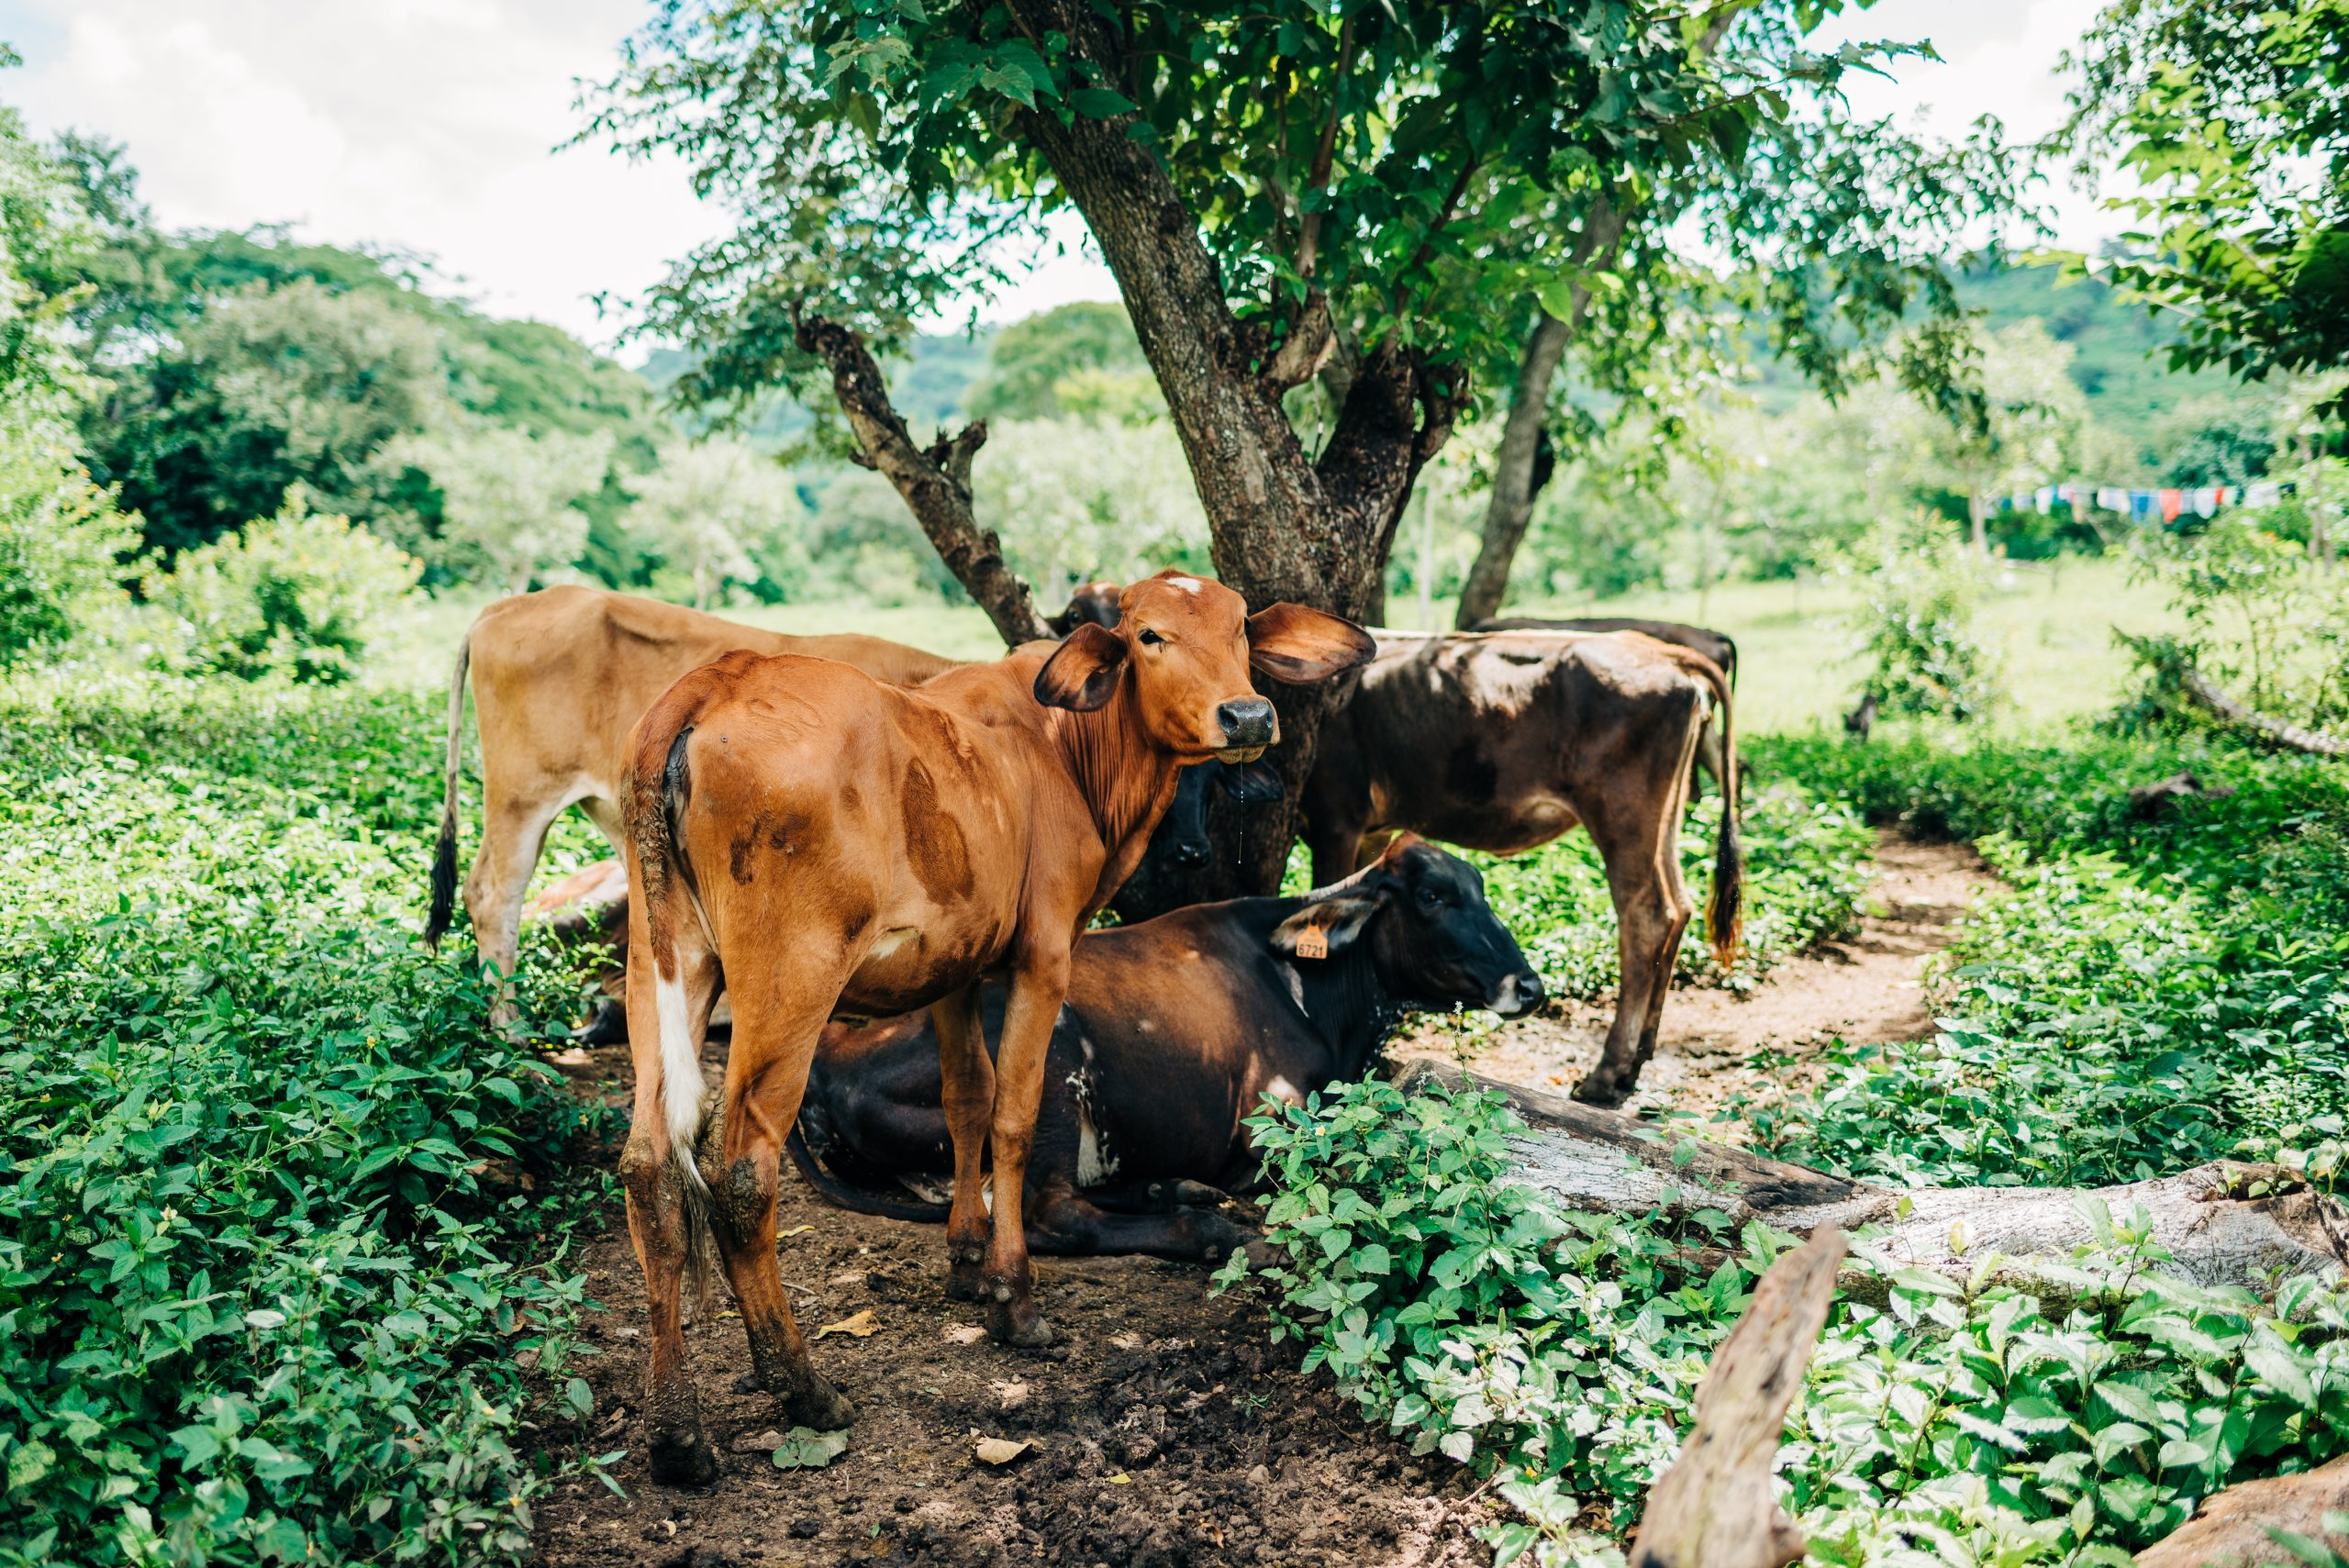 Cows stand under the shade of trees. Planting trees helps reduce the environmental impact of cattle ranching